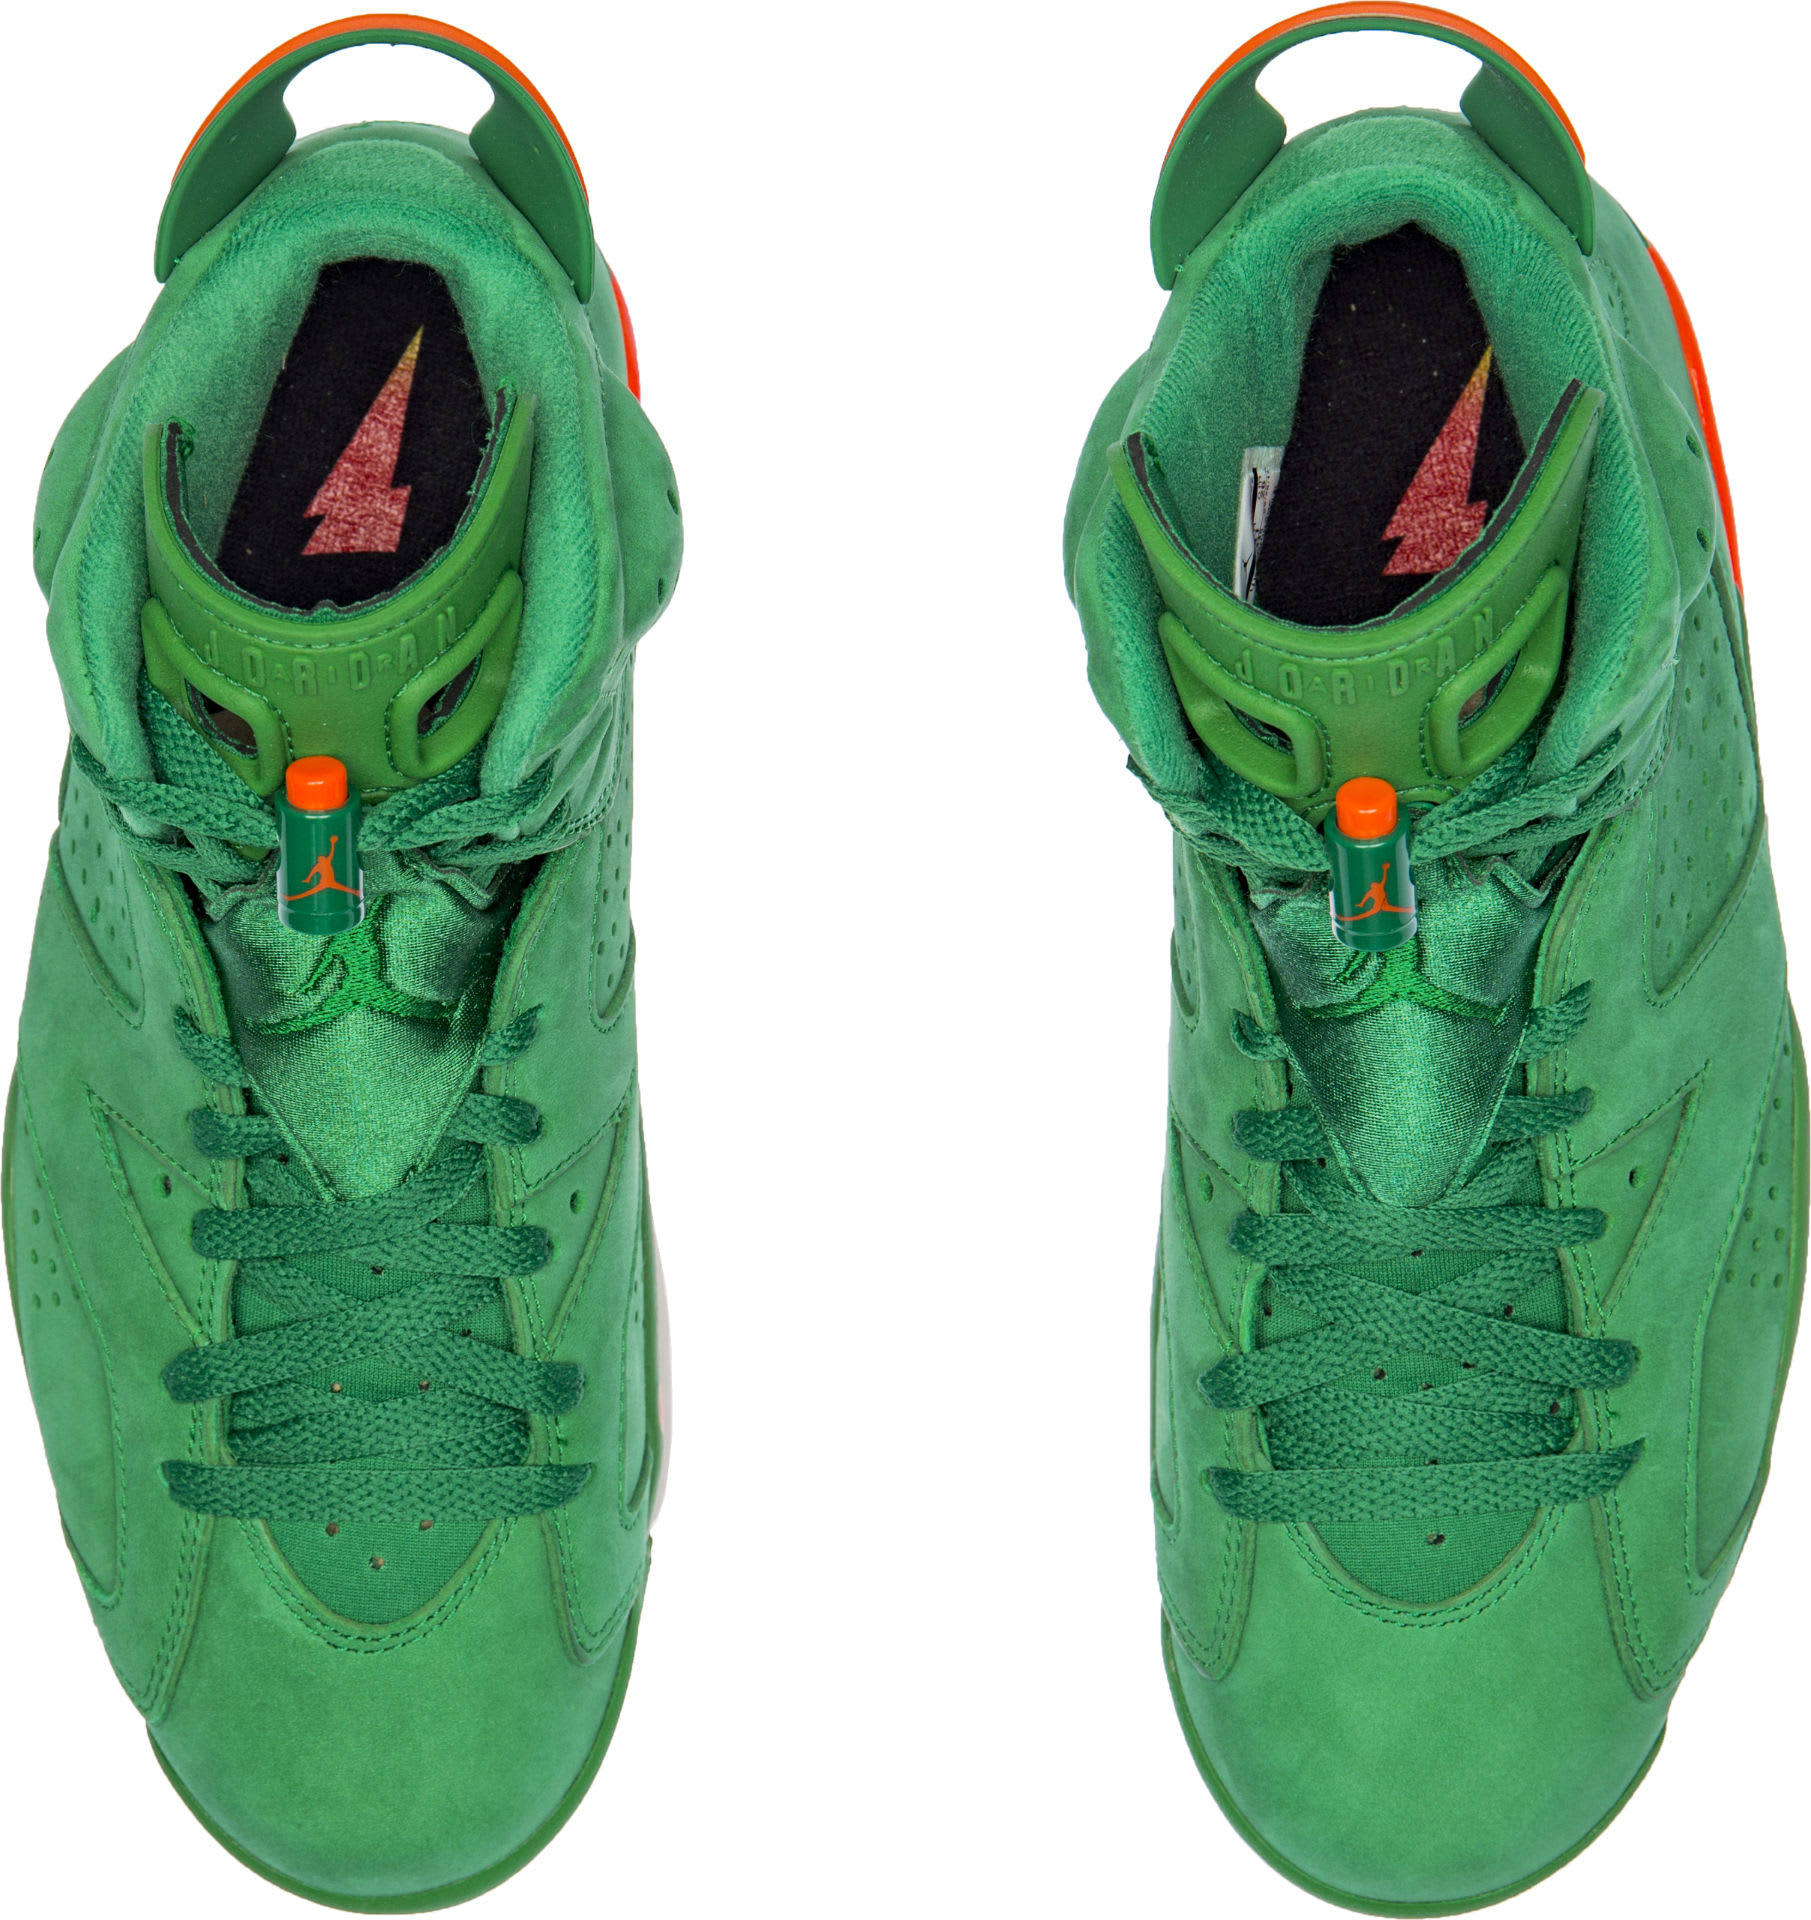 Air Jordan 6 VI Gatorade Green Release Date AJ5986-335 Top